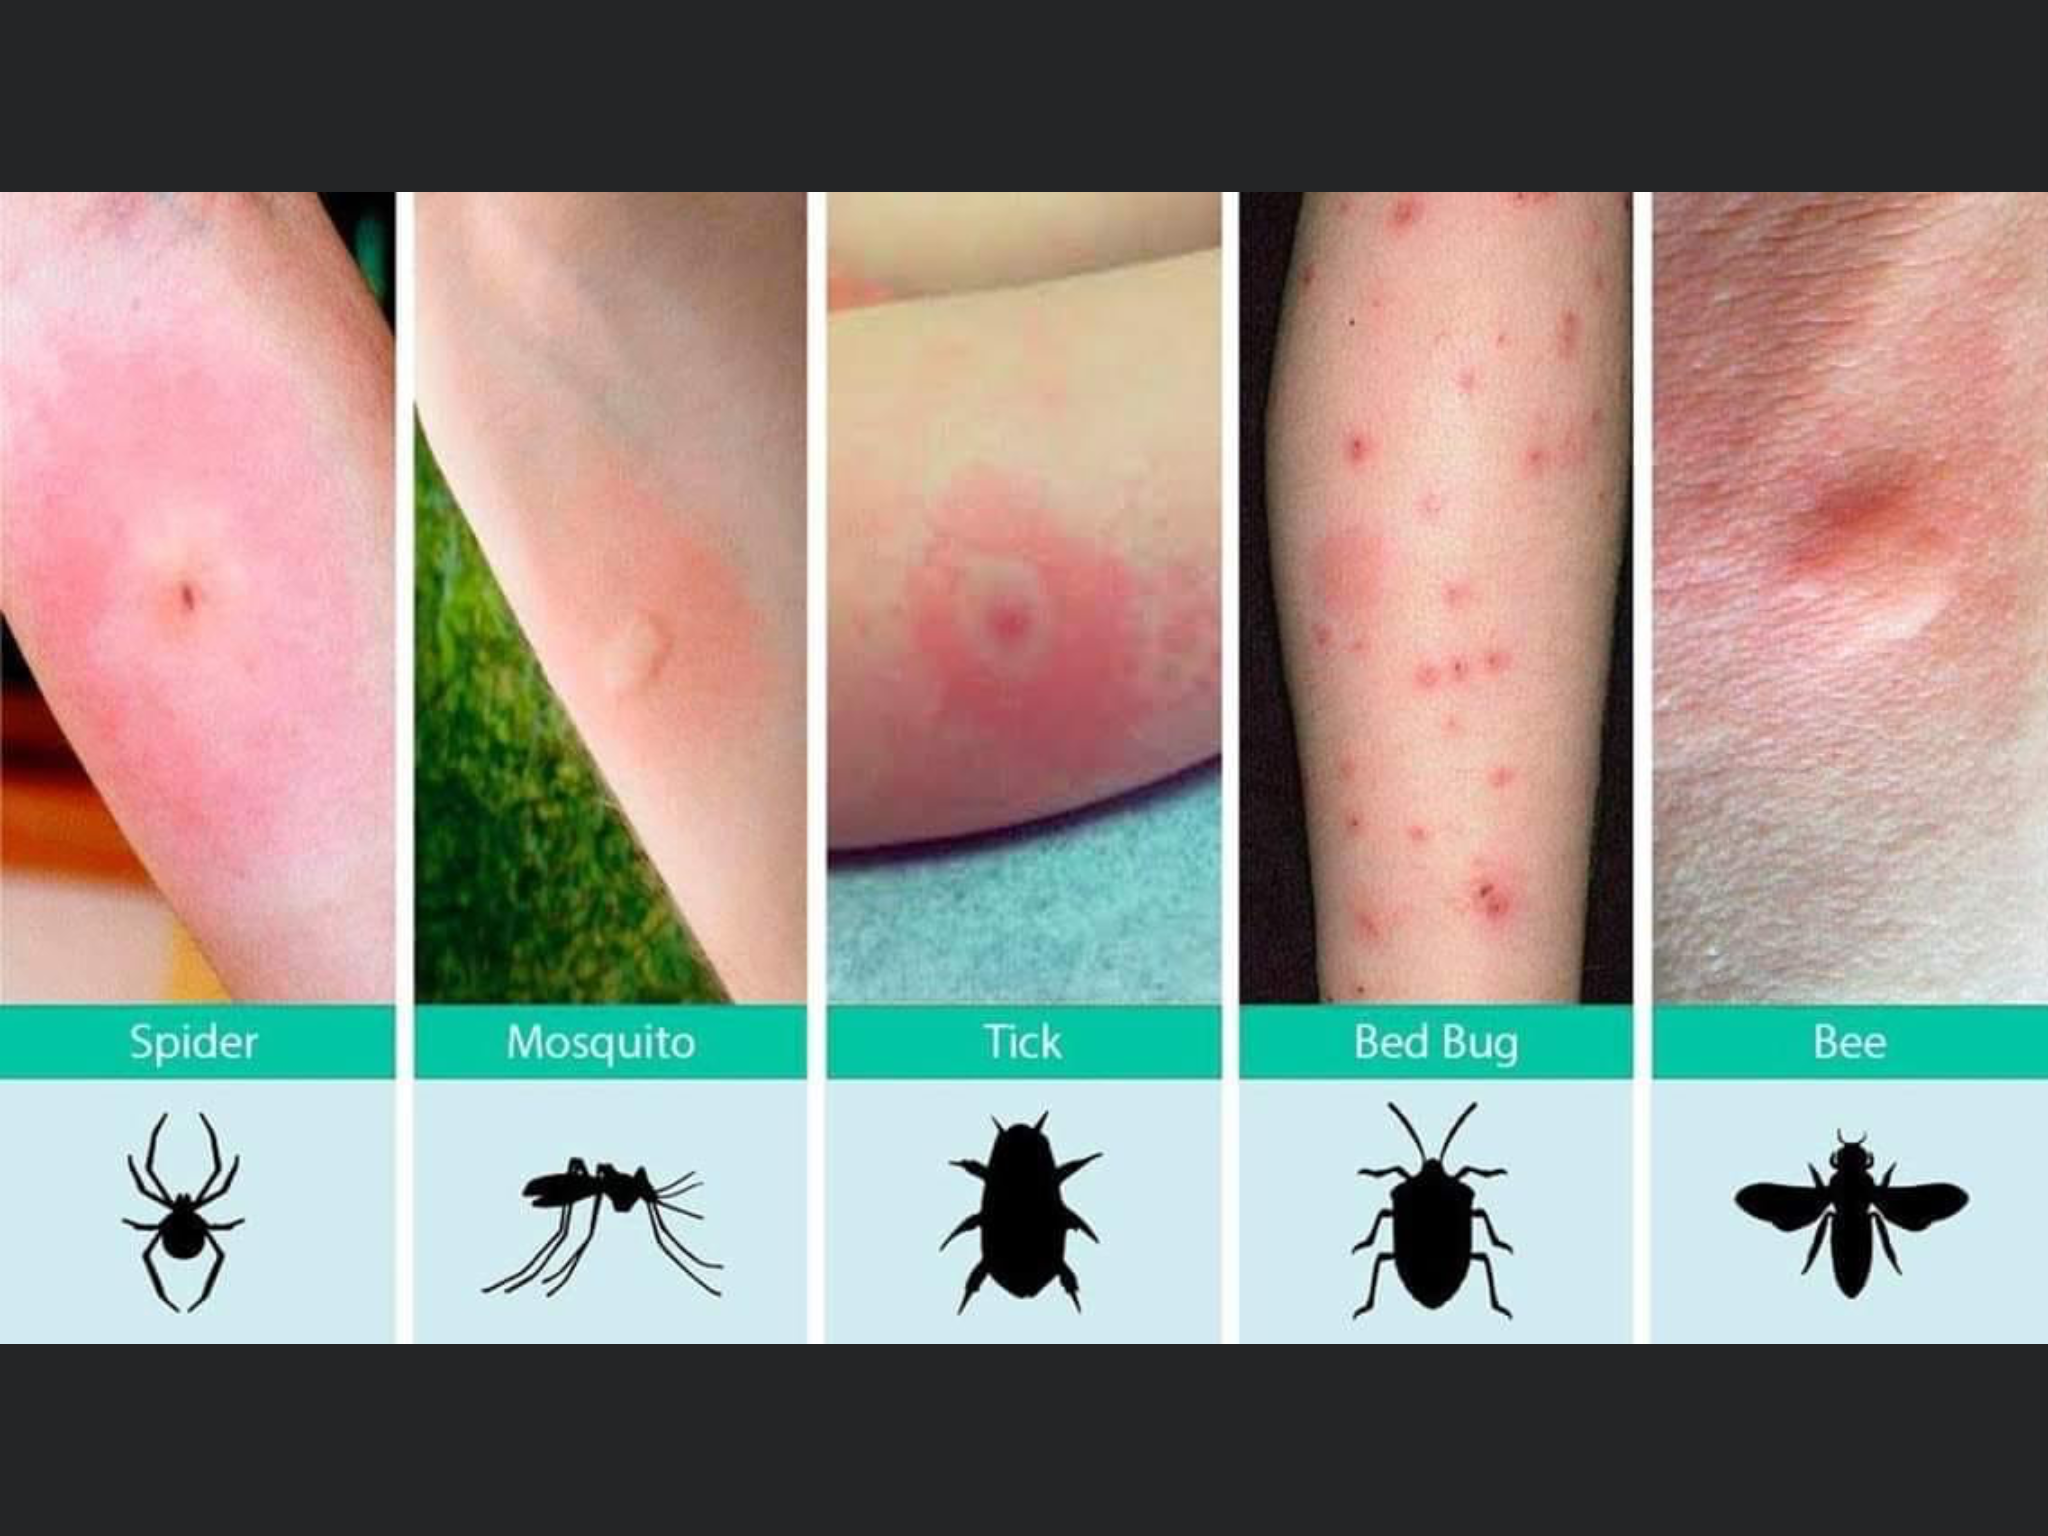 Pin by Jane Ritter on Tips in 2020 Bed bug bites, Bug